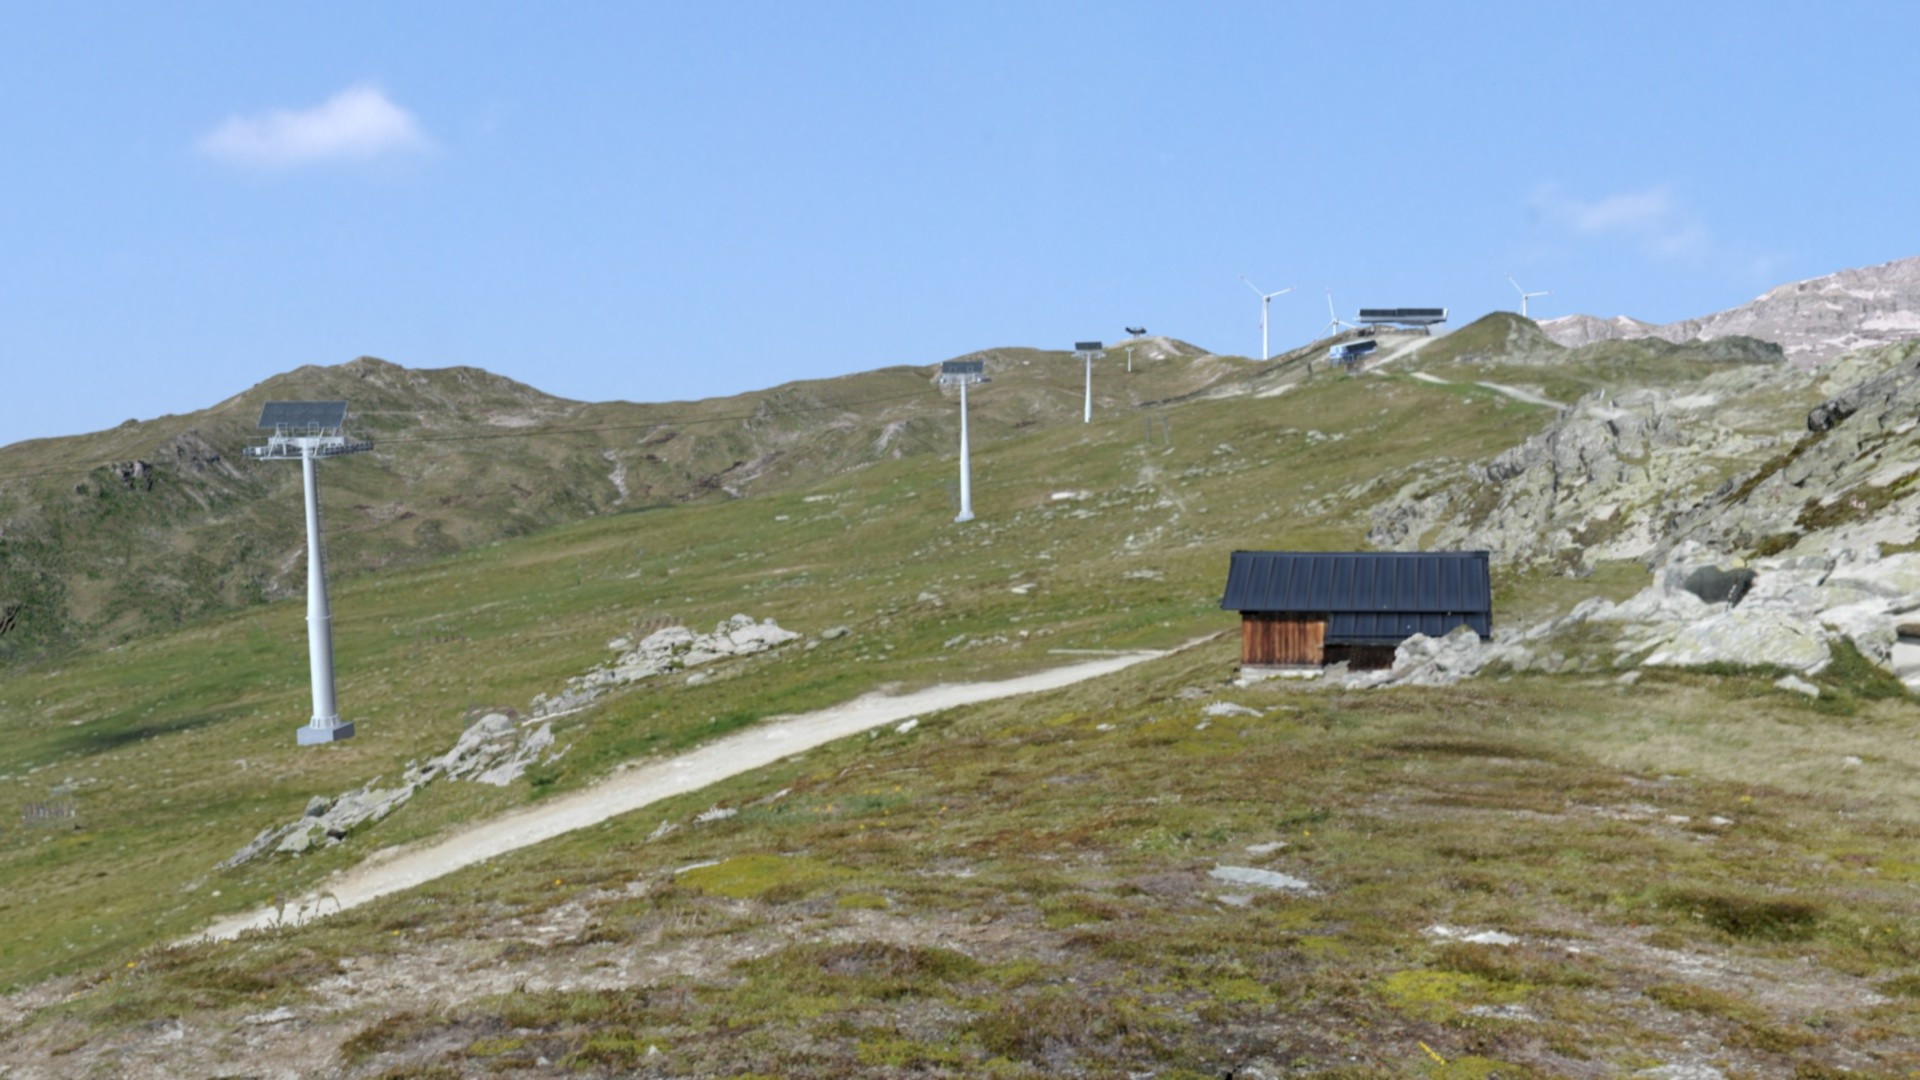 Renewable energy systems in landscapes that already contain infrastructures are accepted by the Swiss population.